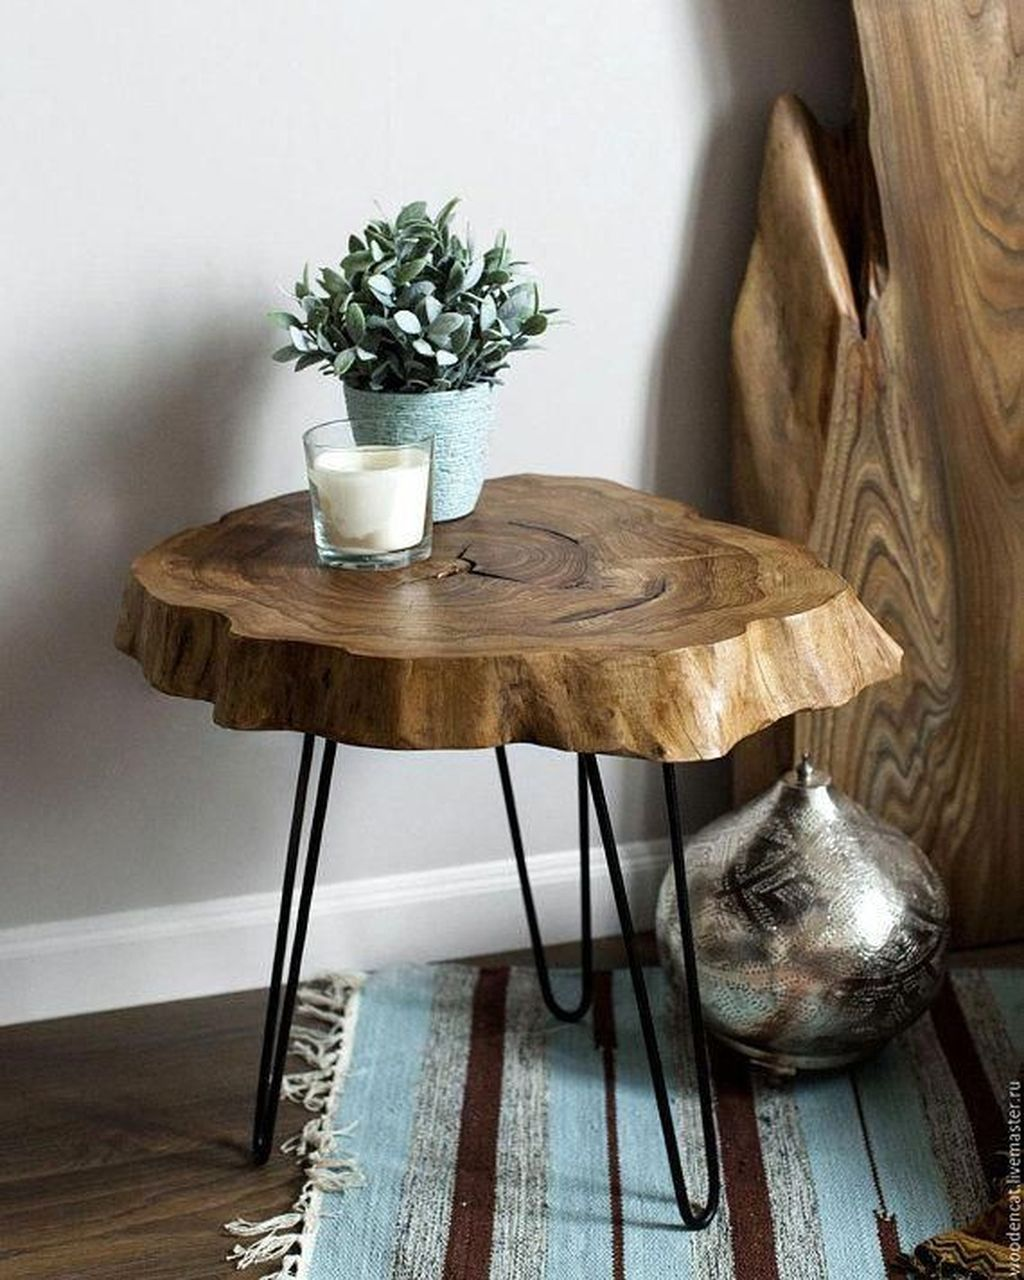 44 Awesome Wooden Coffee Table Design Ideas Match For Any Home Design Wooden Coffee Table Designs Wood Table Design Coffee Table Design [ 1280 x 1024 Pixel ]